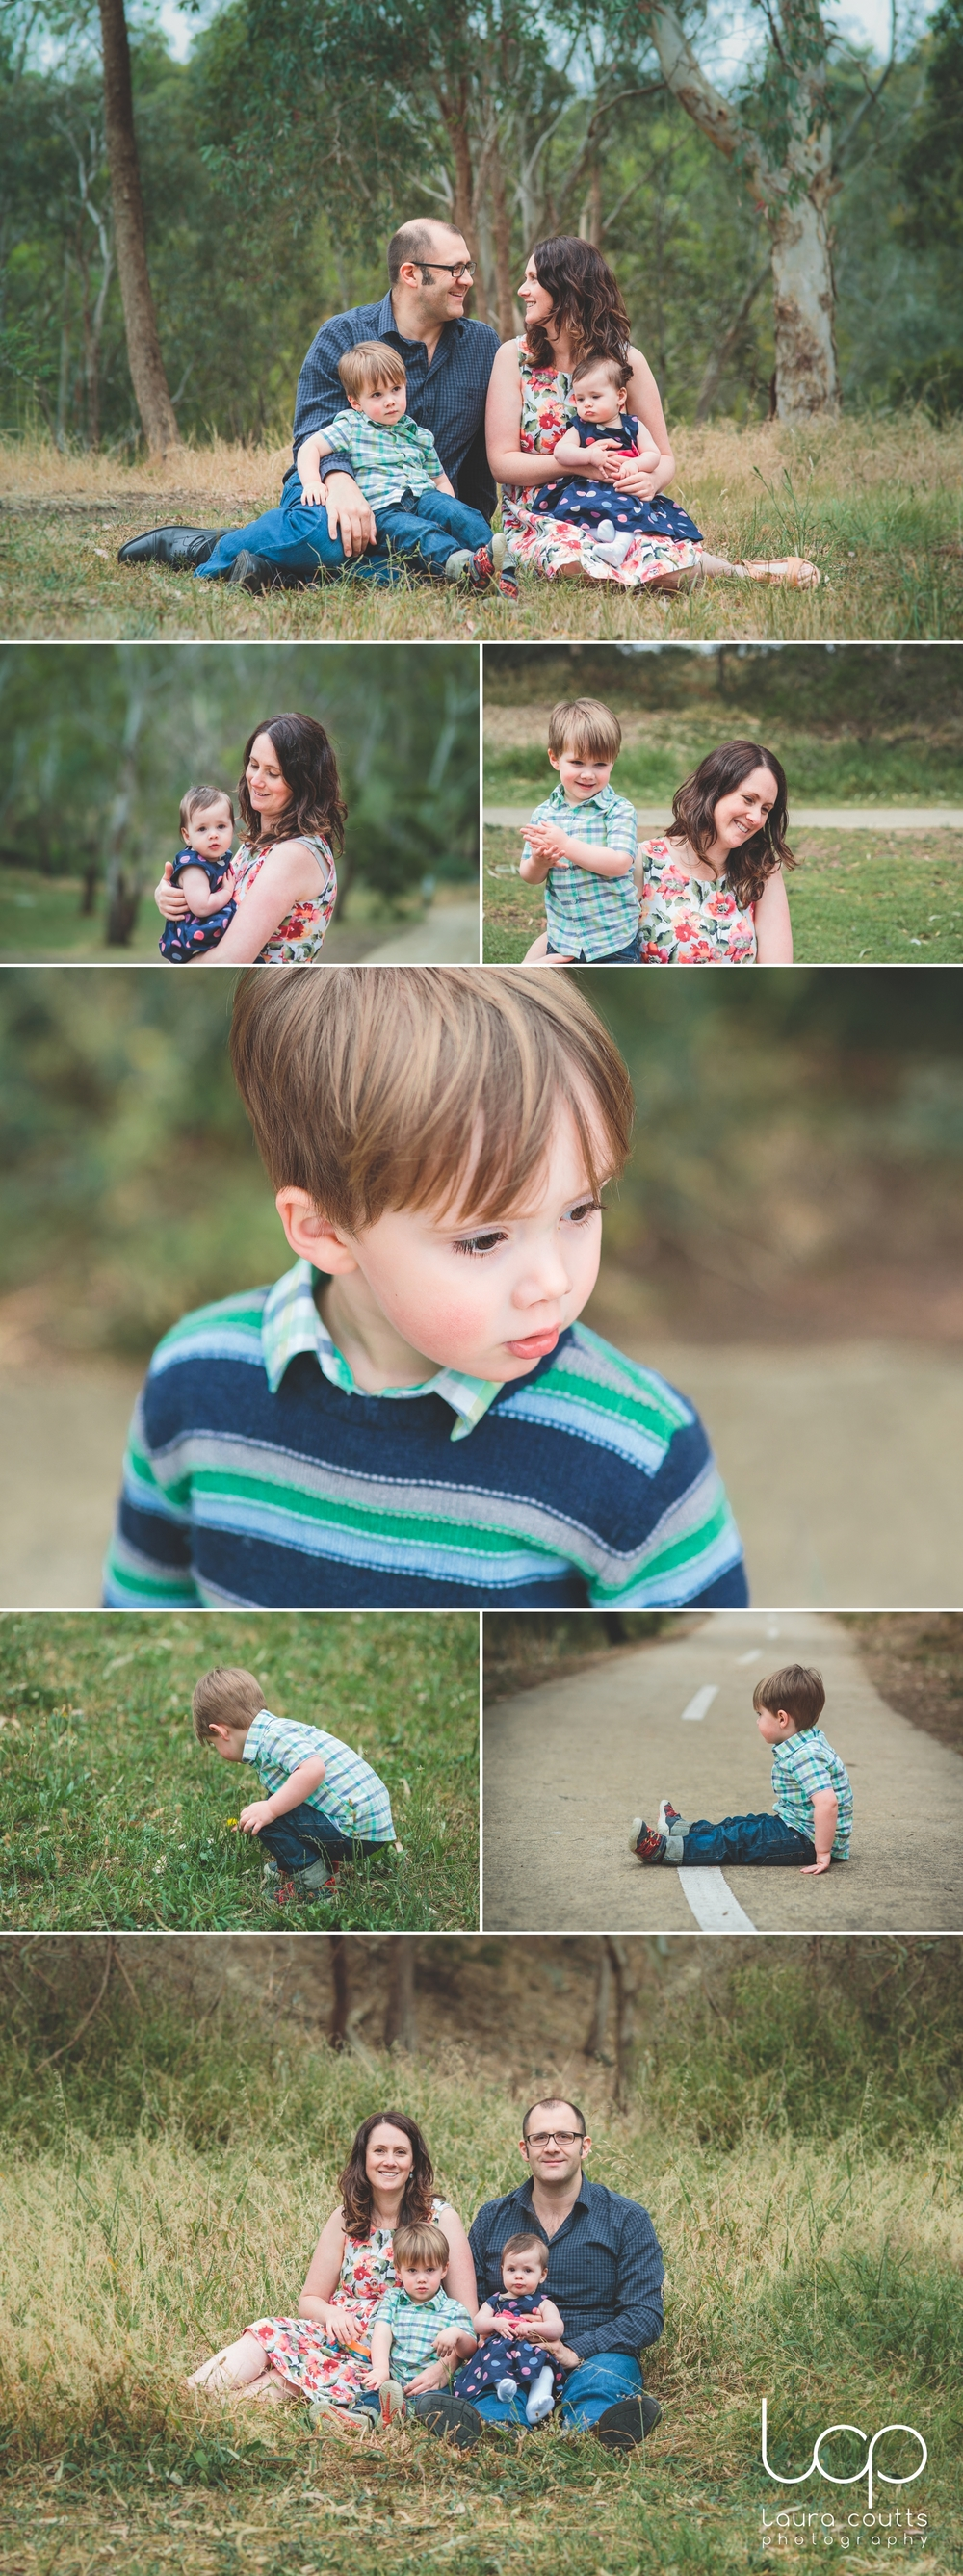 Family at the park | Melbourne family photography | Laura Coutts Photography